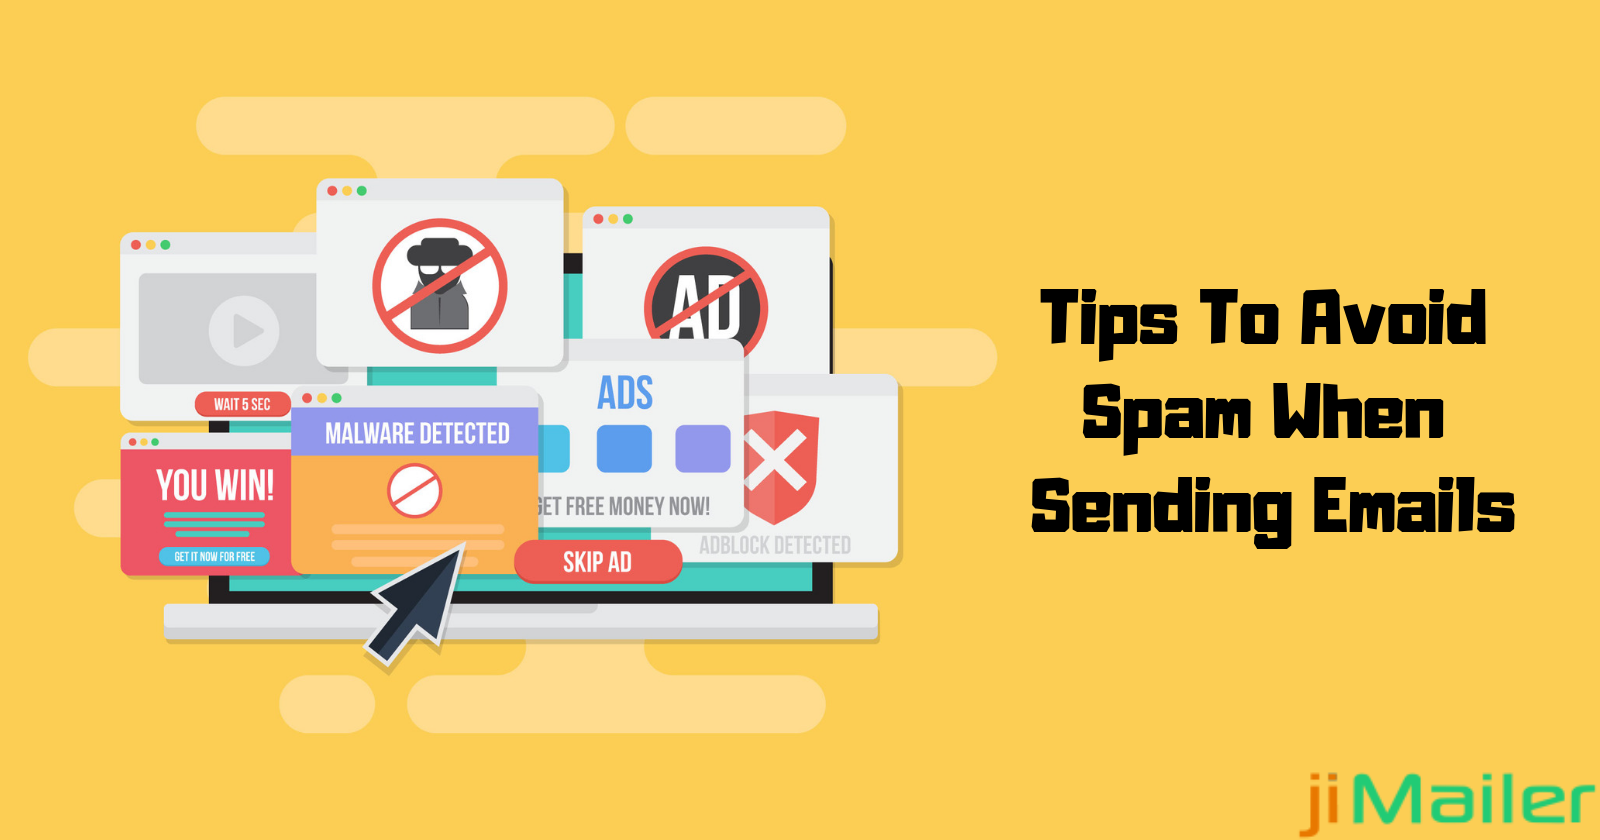 How Can You Prevent Your Mail From Spam Filters?